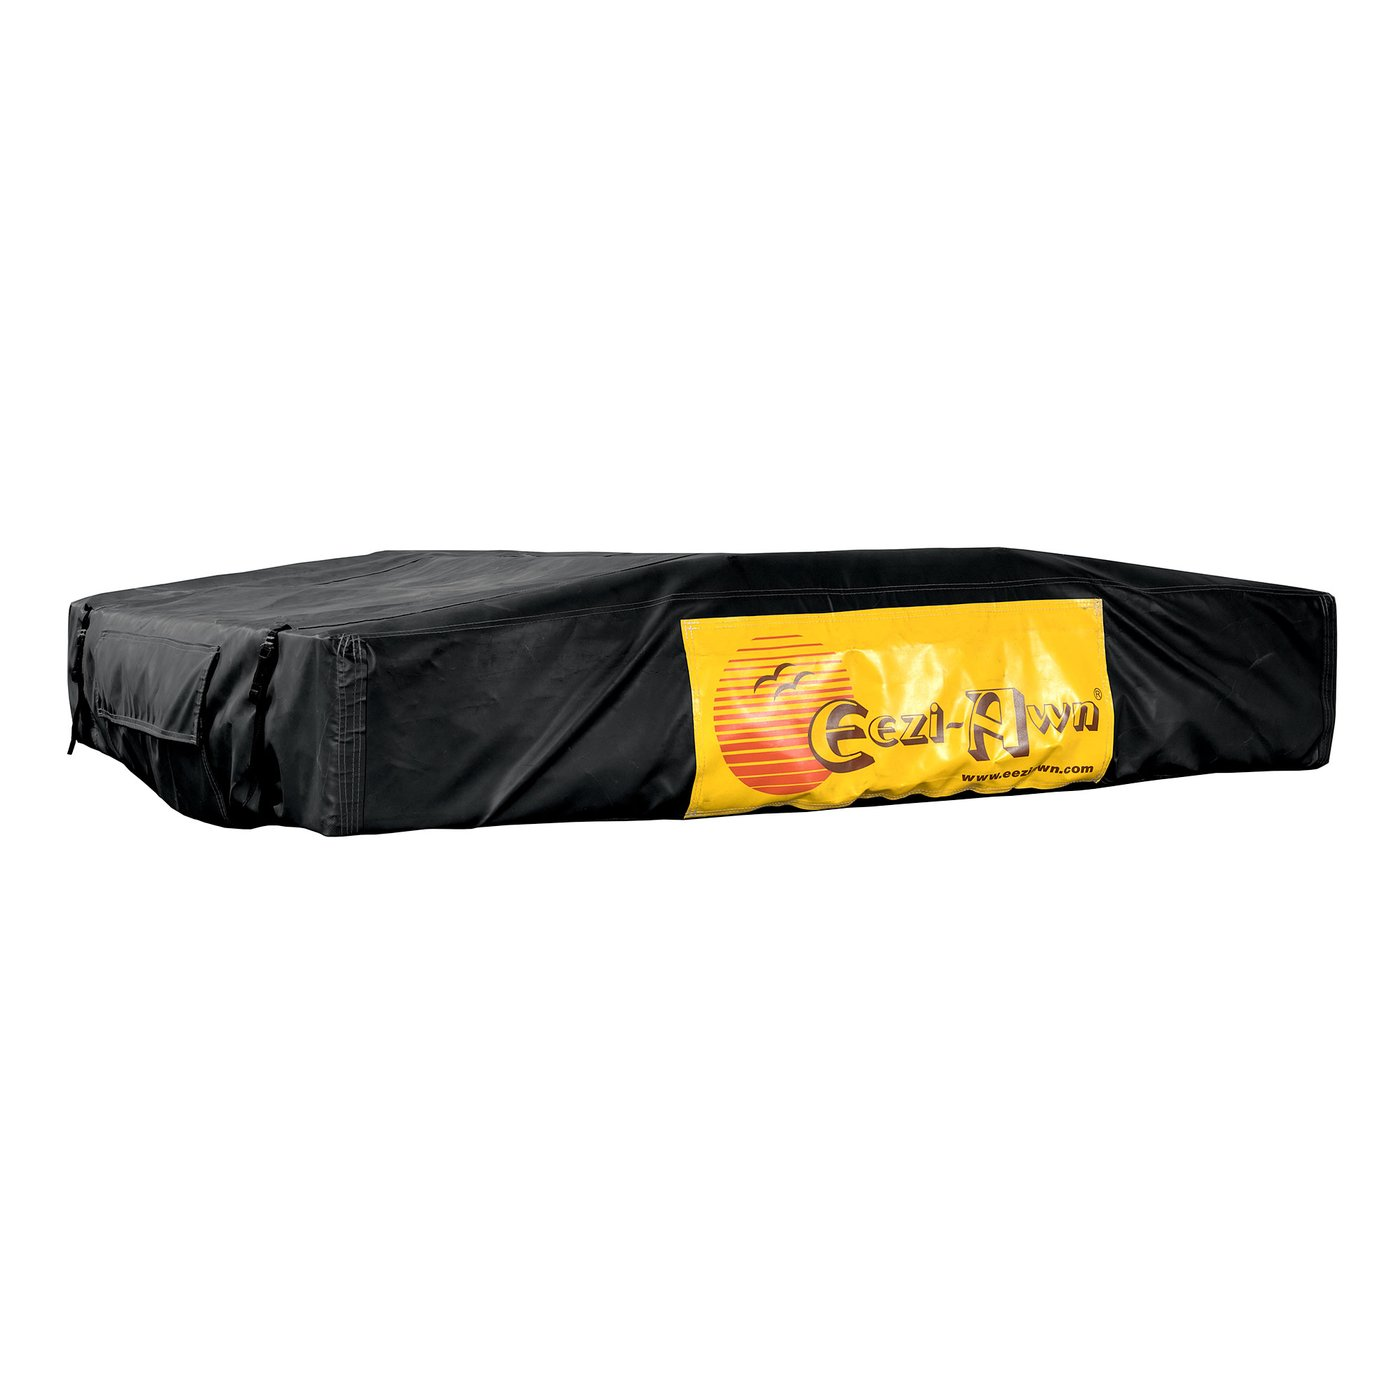 Eezi-Awn Roof Top Tent Cover